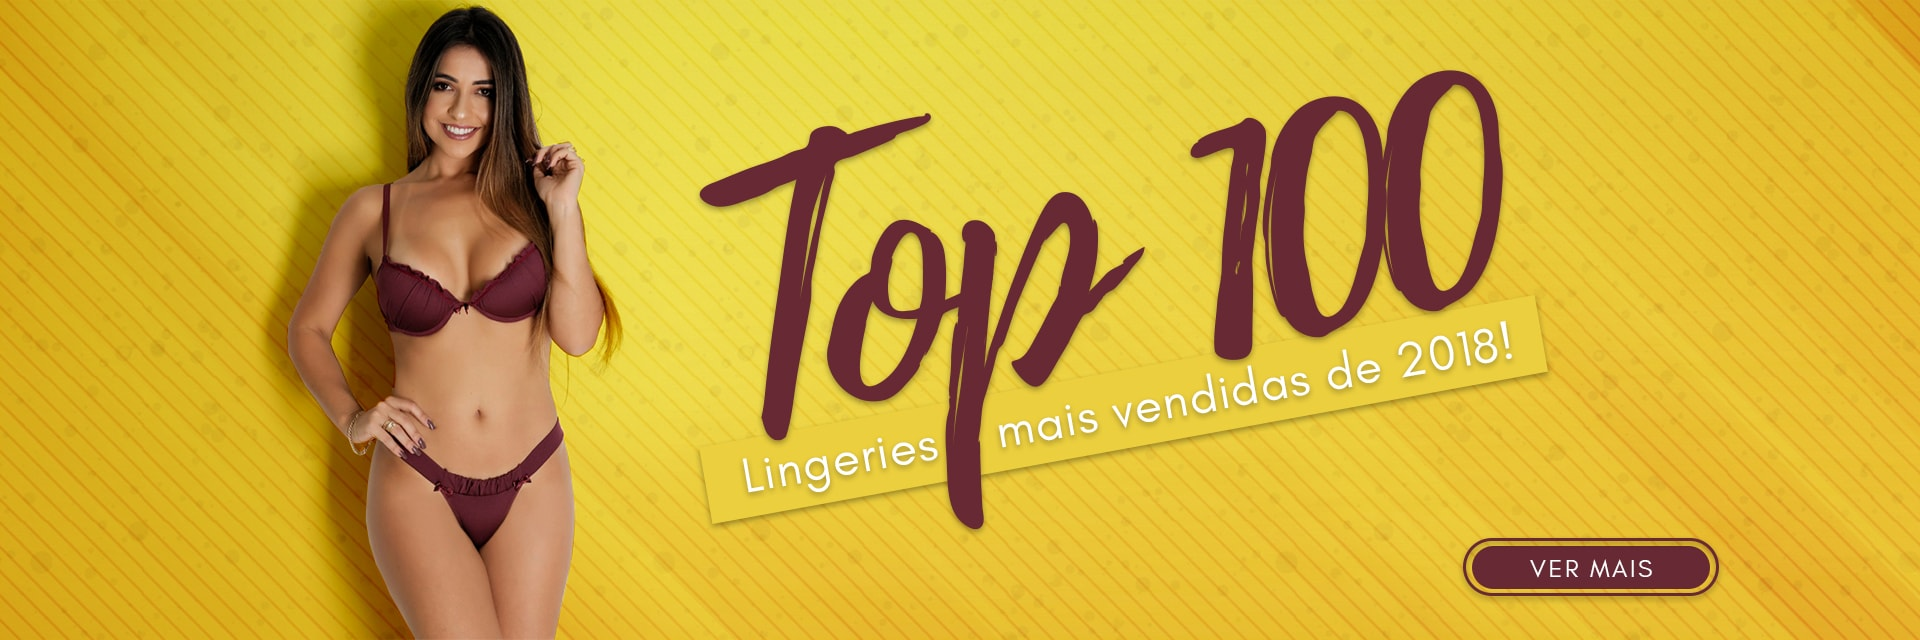 Top 100 - Lingeries mais vendidas de 2018